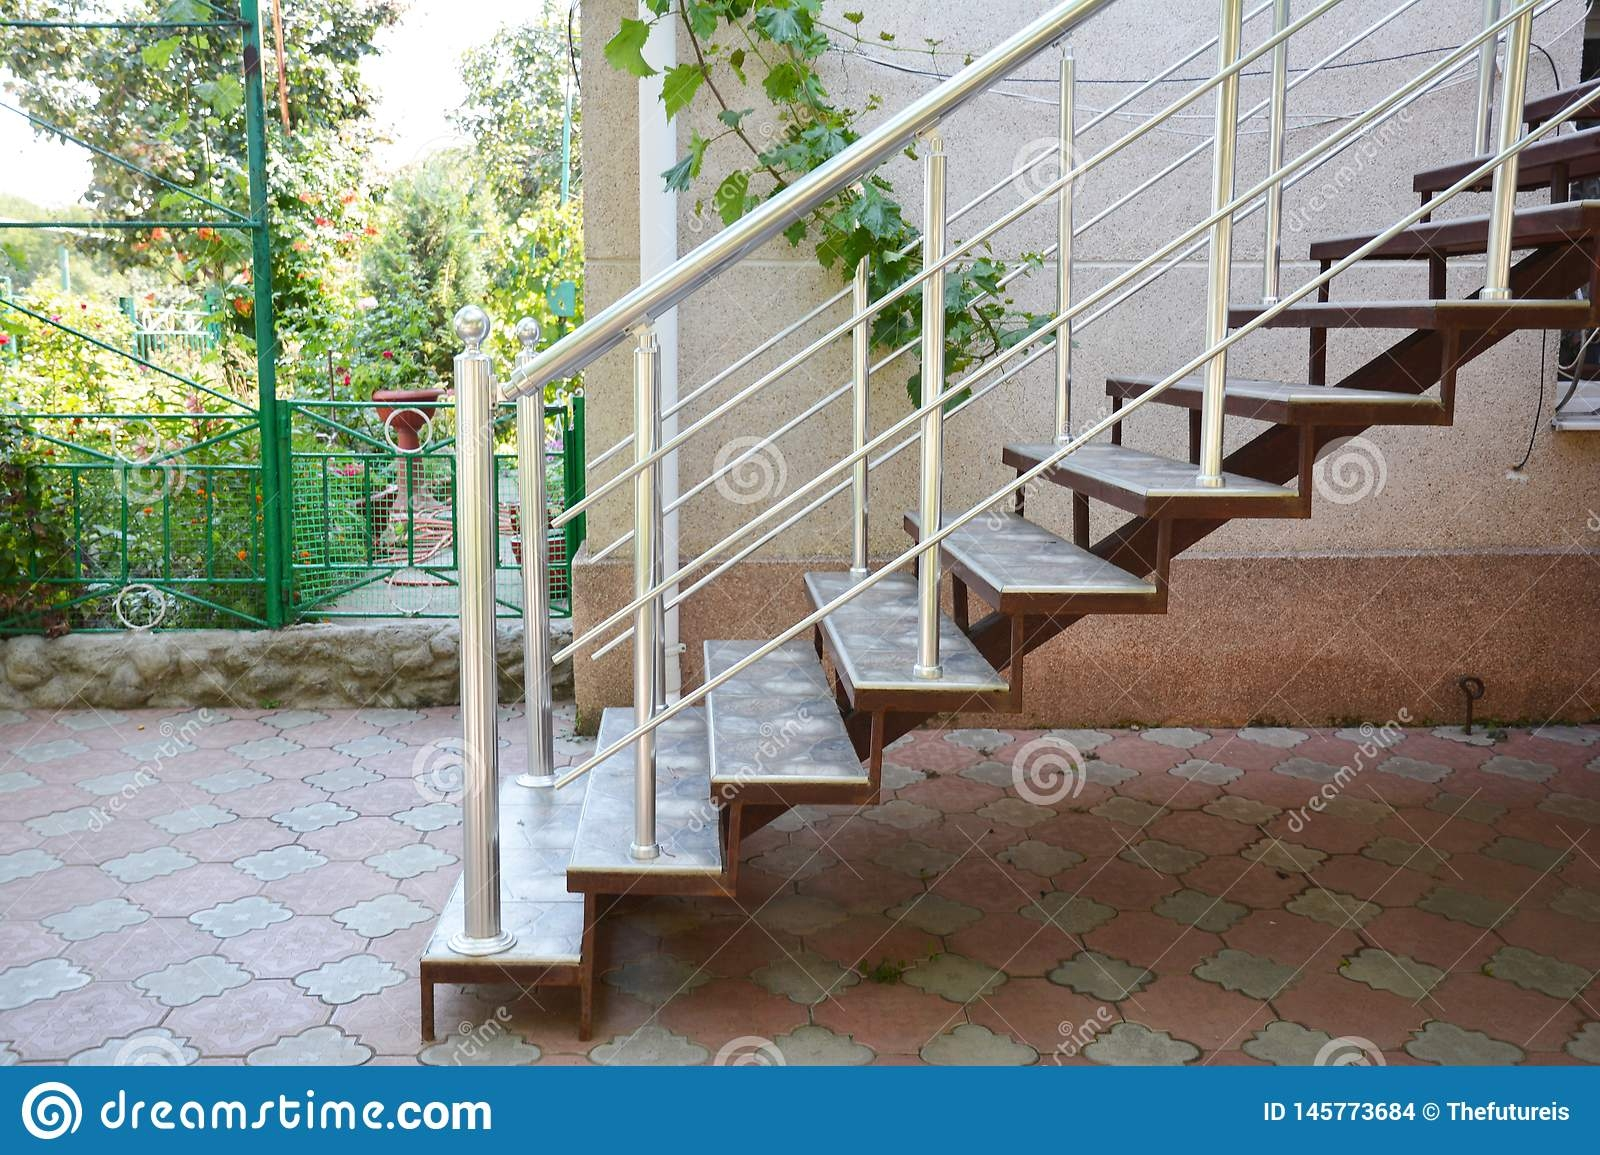 Home Metal Staircase Outdoors Building New Metal Steps In House | Home Entrance Steps Design | Exterior | Sophisticated | Angled | Bungalow Entrance | Concrete